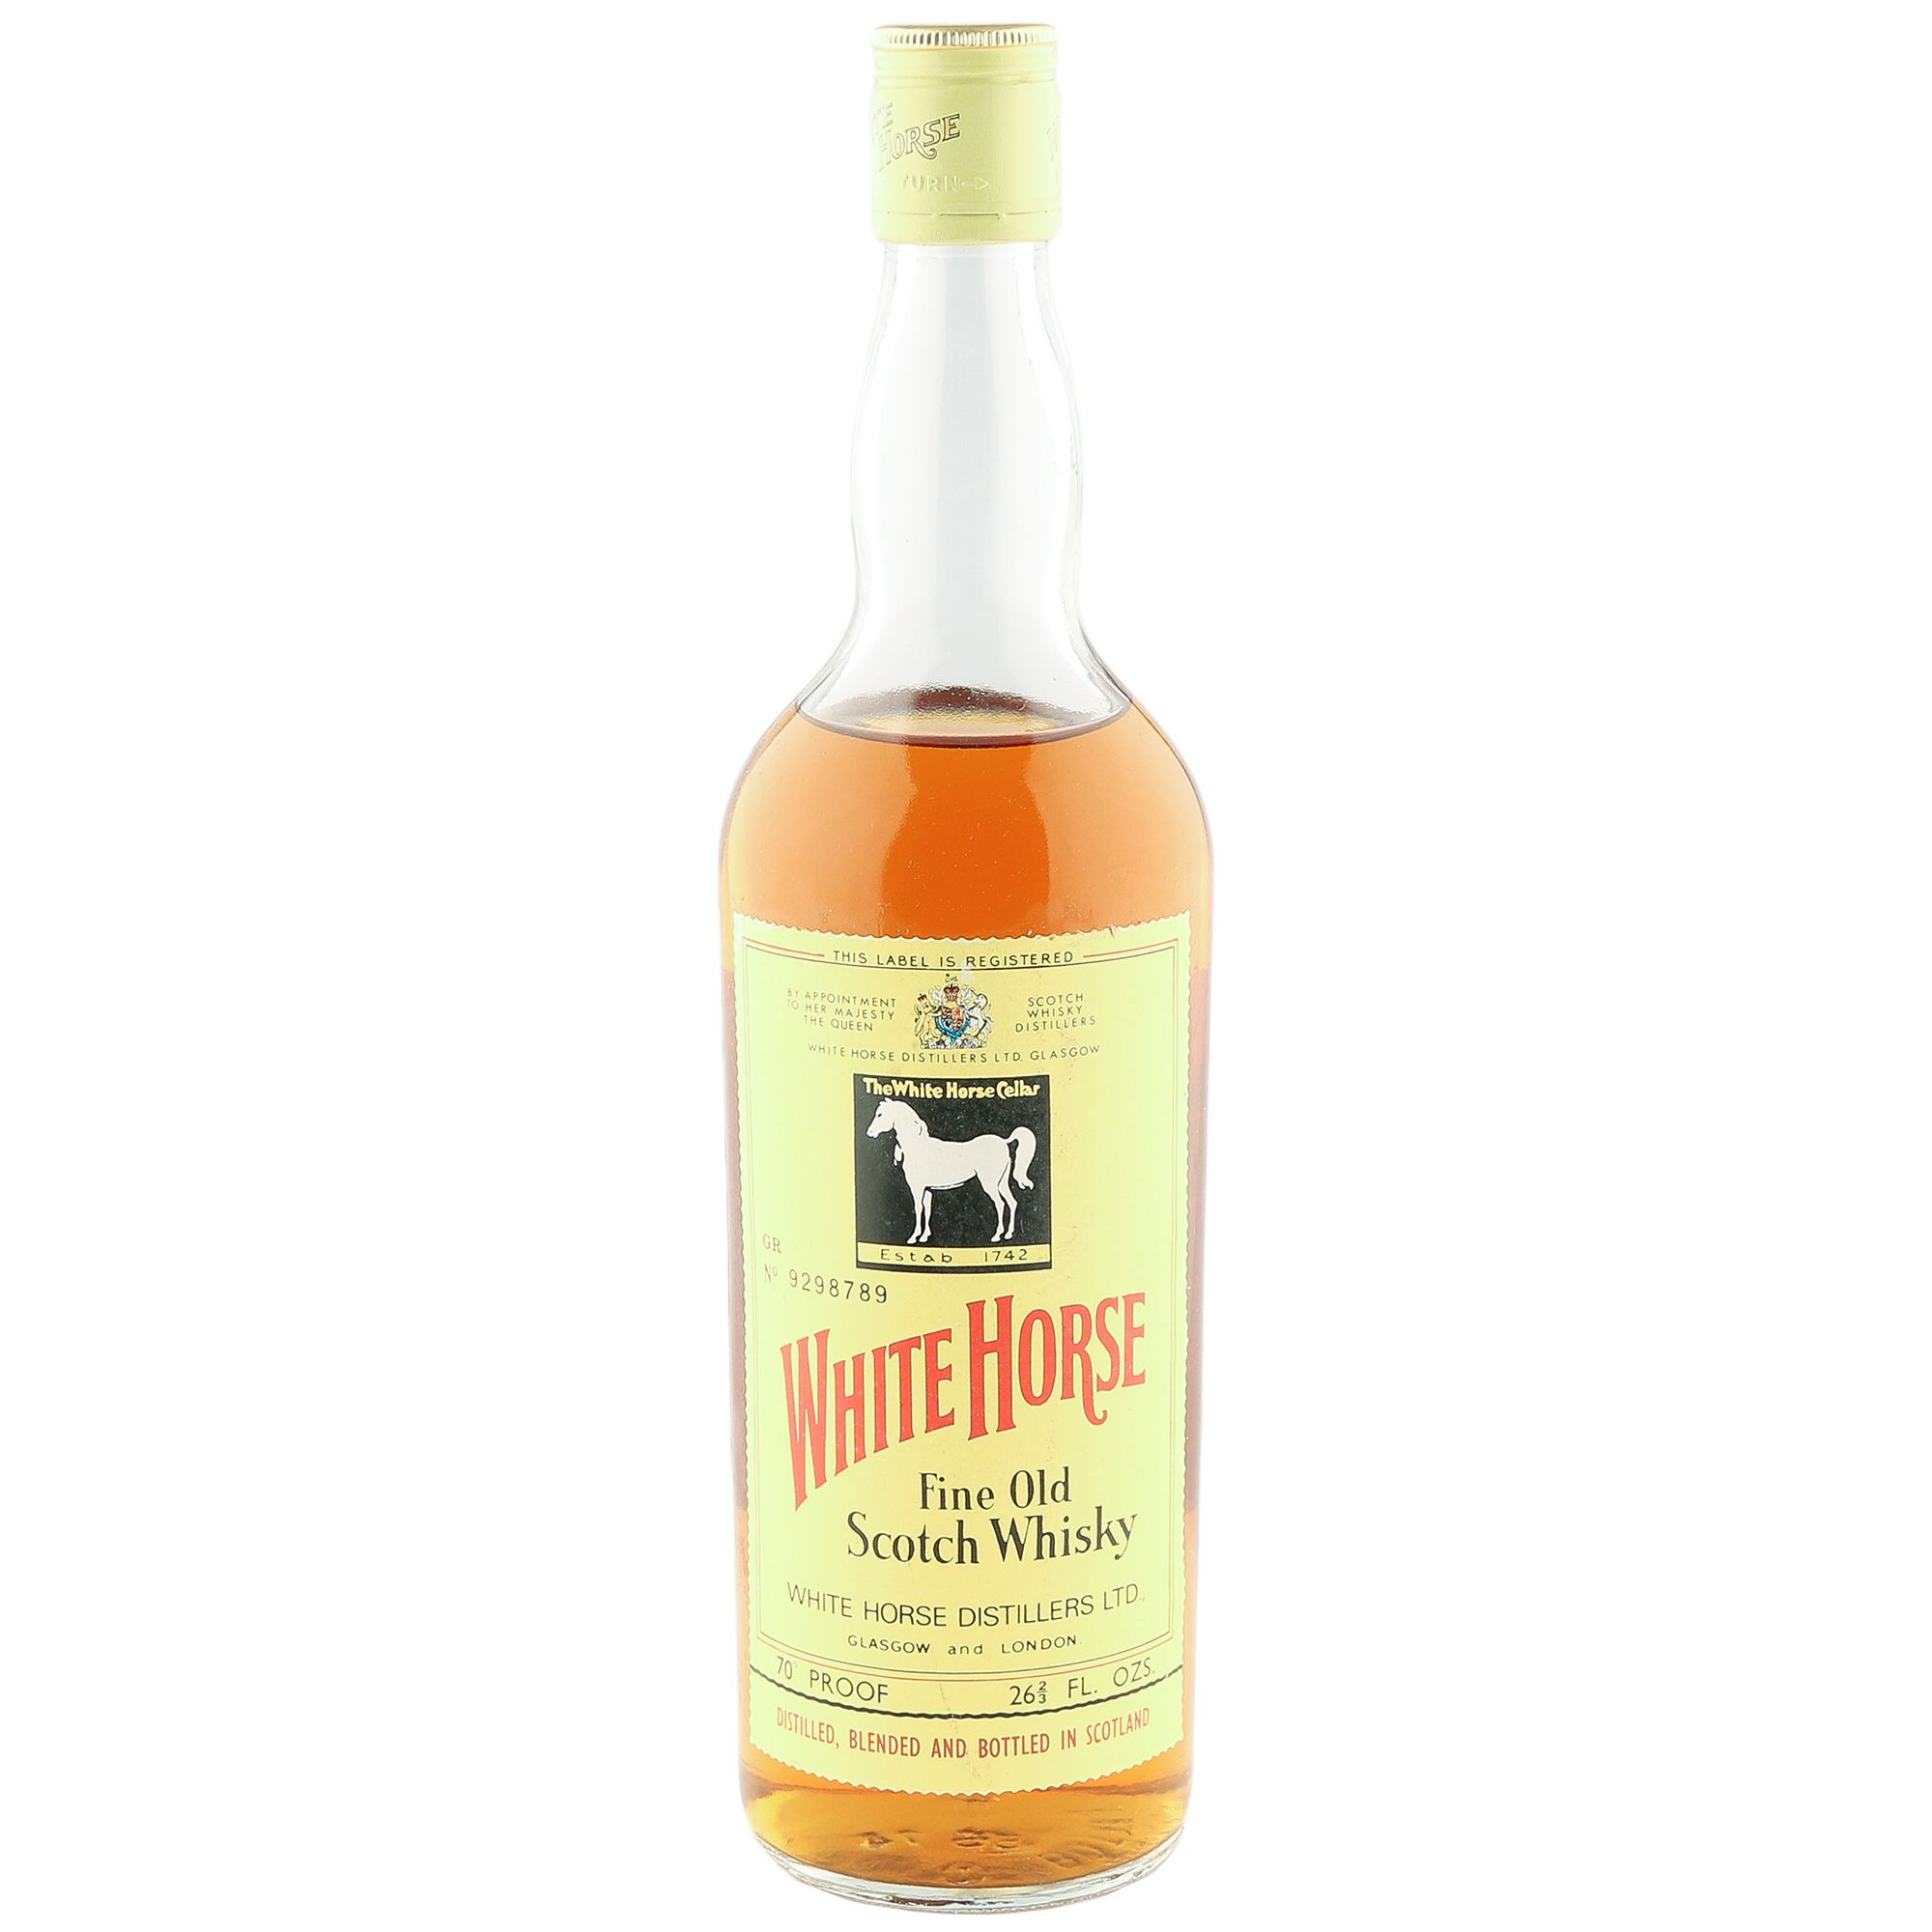 White Horse Blended Scotch Whisky Seventies The Whisky Vault